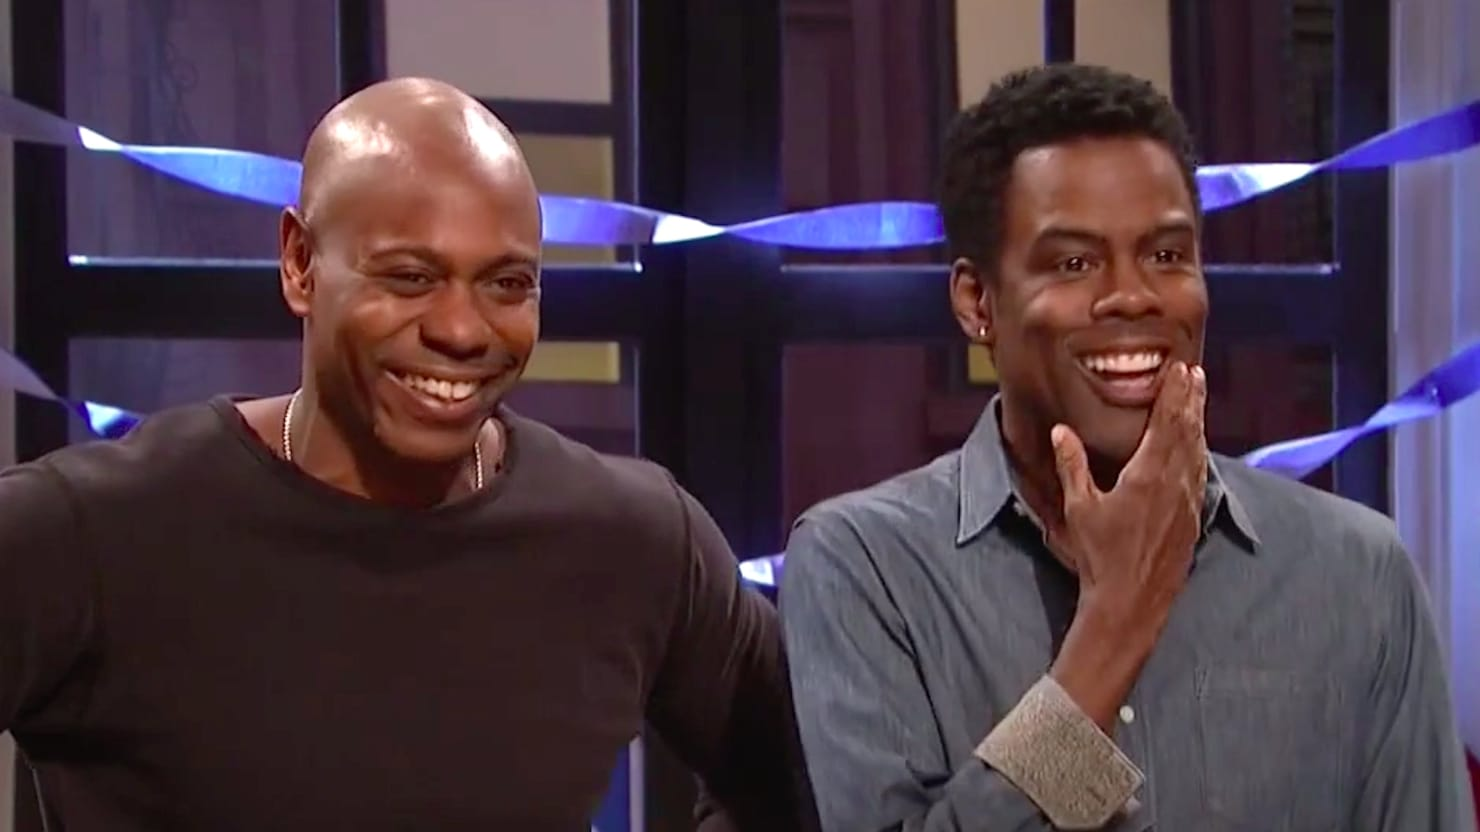 SNL's Dave Chappelle, Chris Rock Not Surprised by Trump Win: 'You Ever Been Around This Country?'